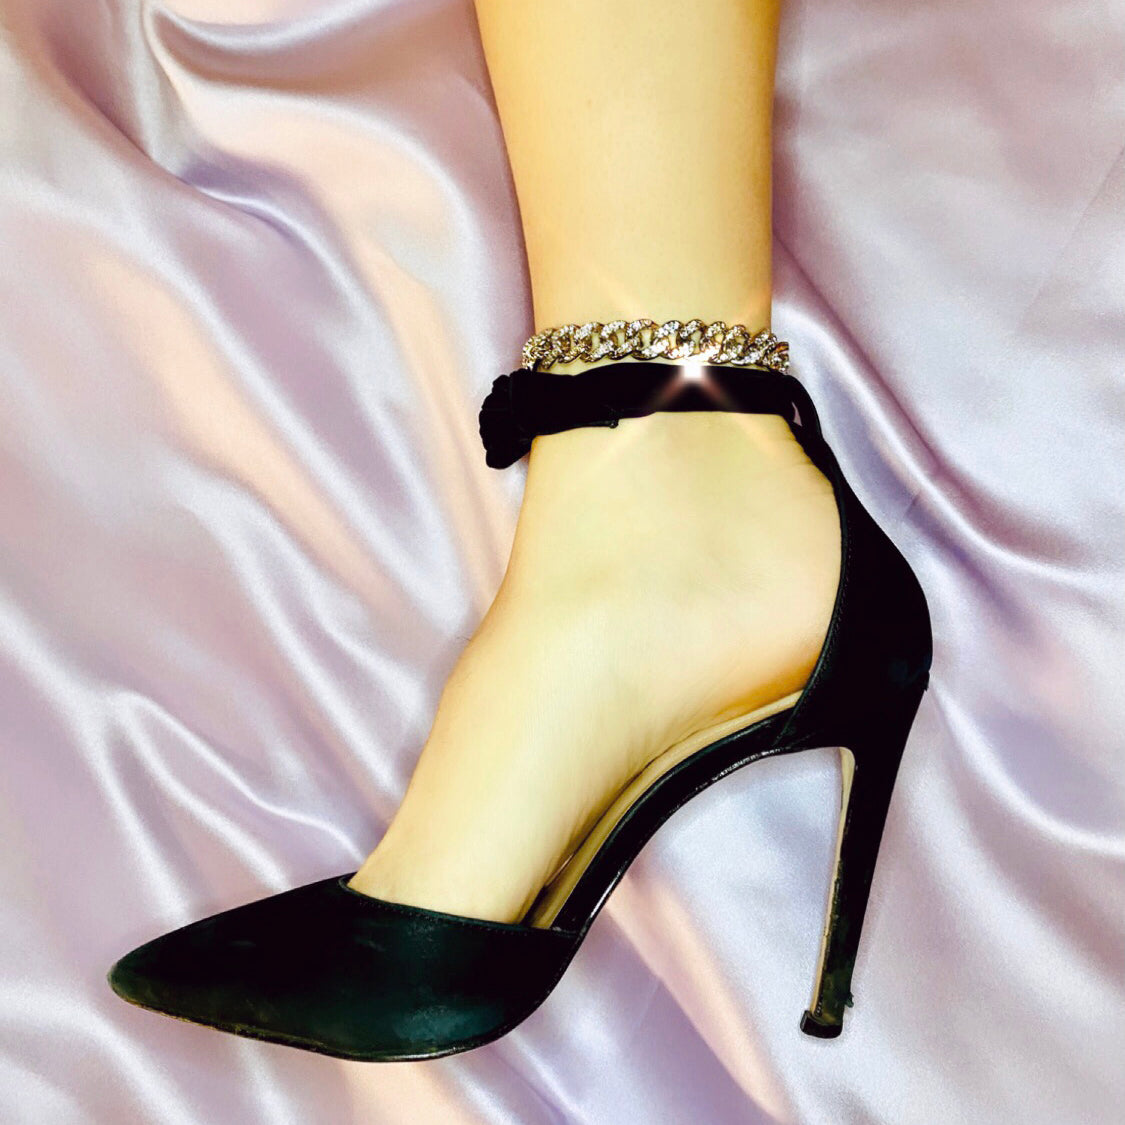 Cuban Luxe Anklet - Darlings Jewelry | Express Yourself Through Bling!